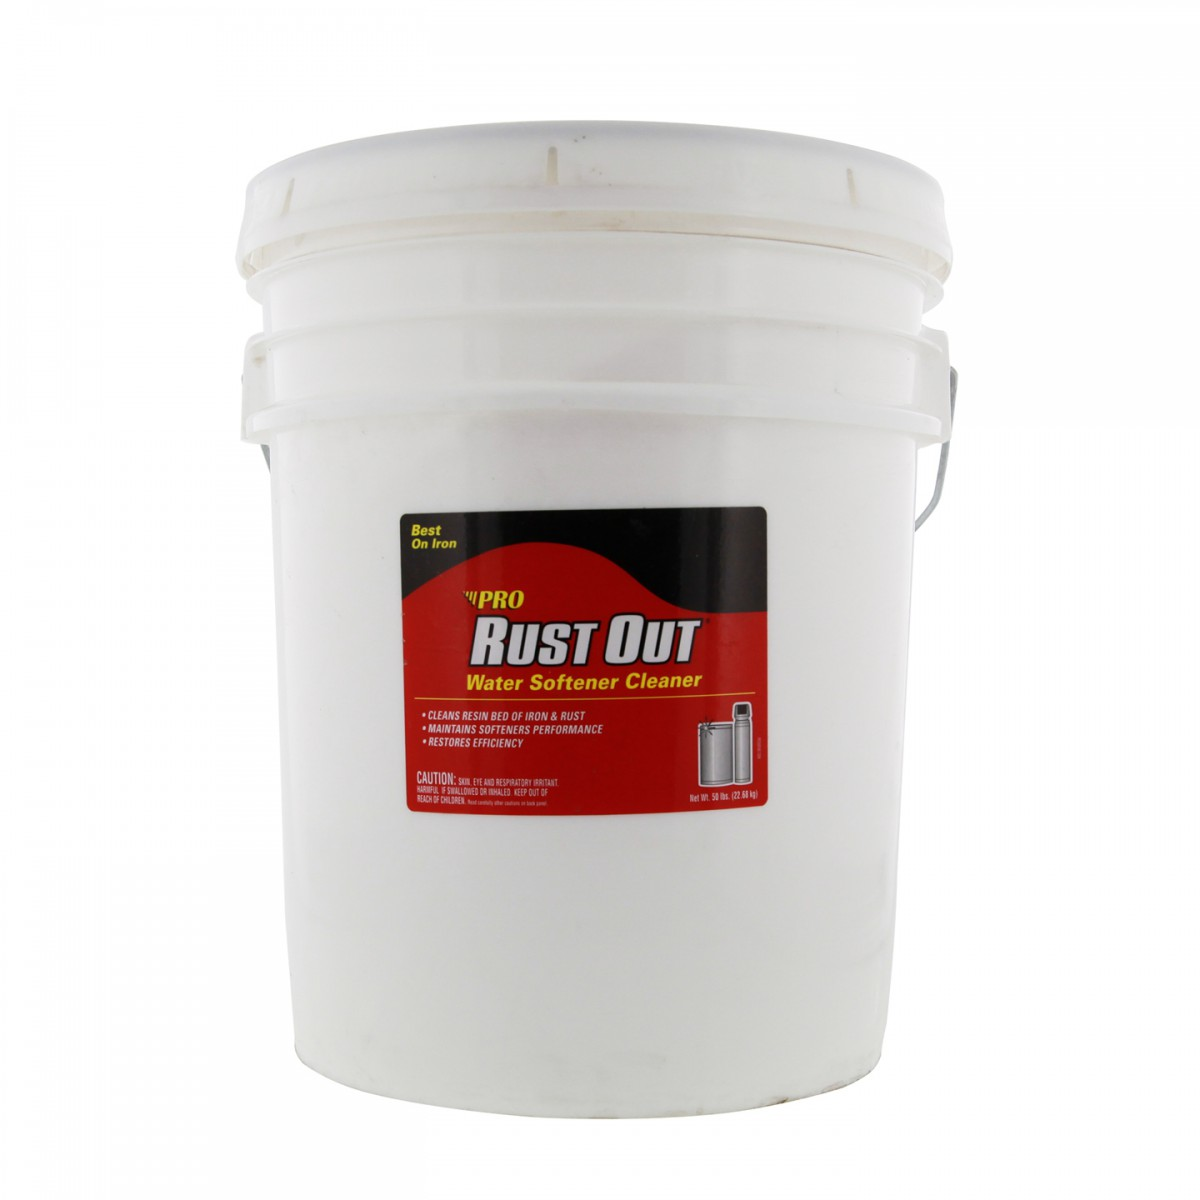 Pro Products Pro Rust Out Rust Remover